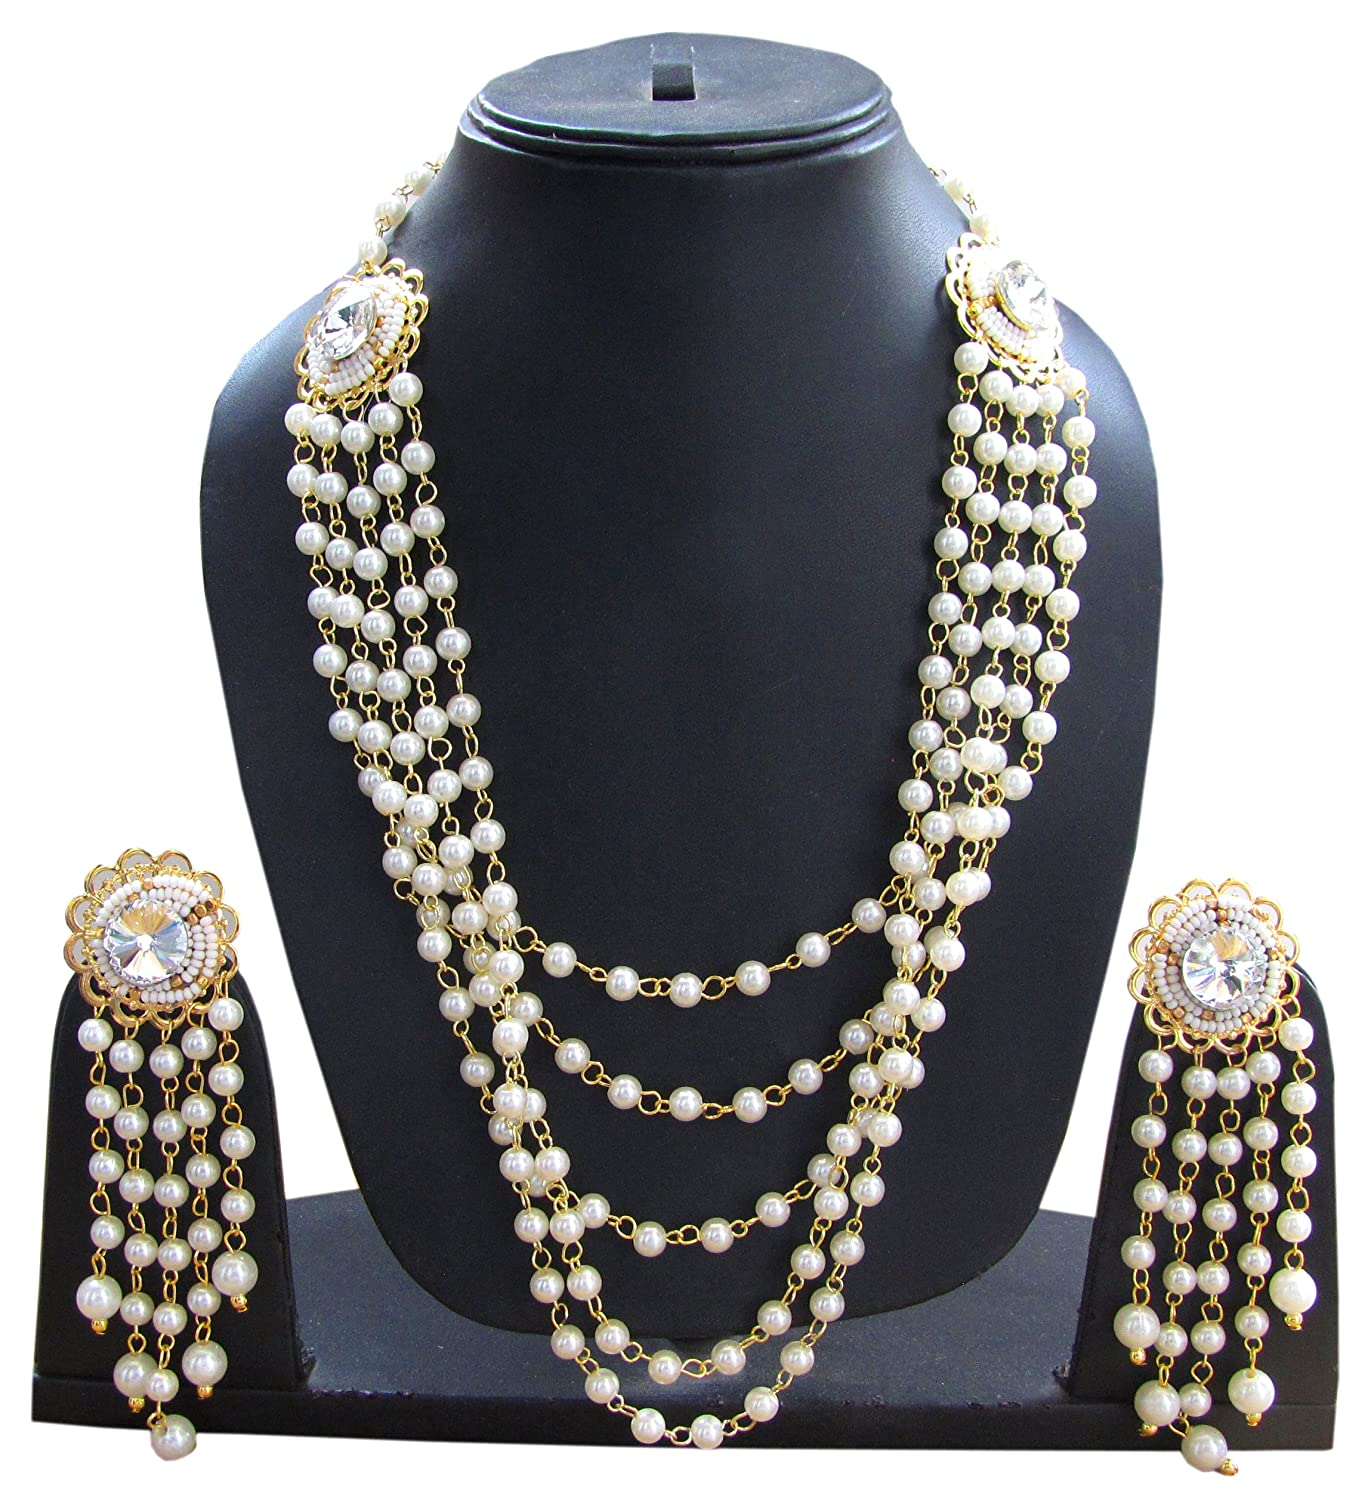 Shoppingover Womens Bollywood Jwelleries Pearl Necklace Jewelry Set with Earrings Pearl Color 200NKS